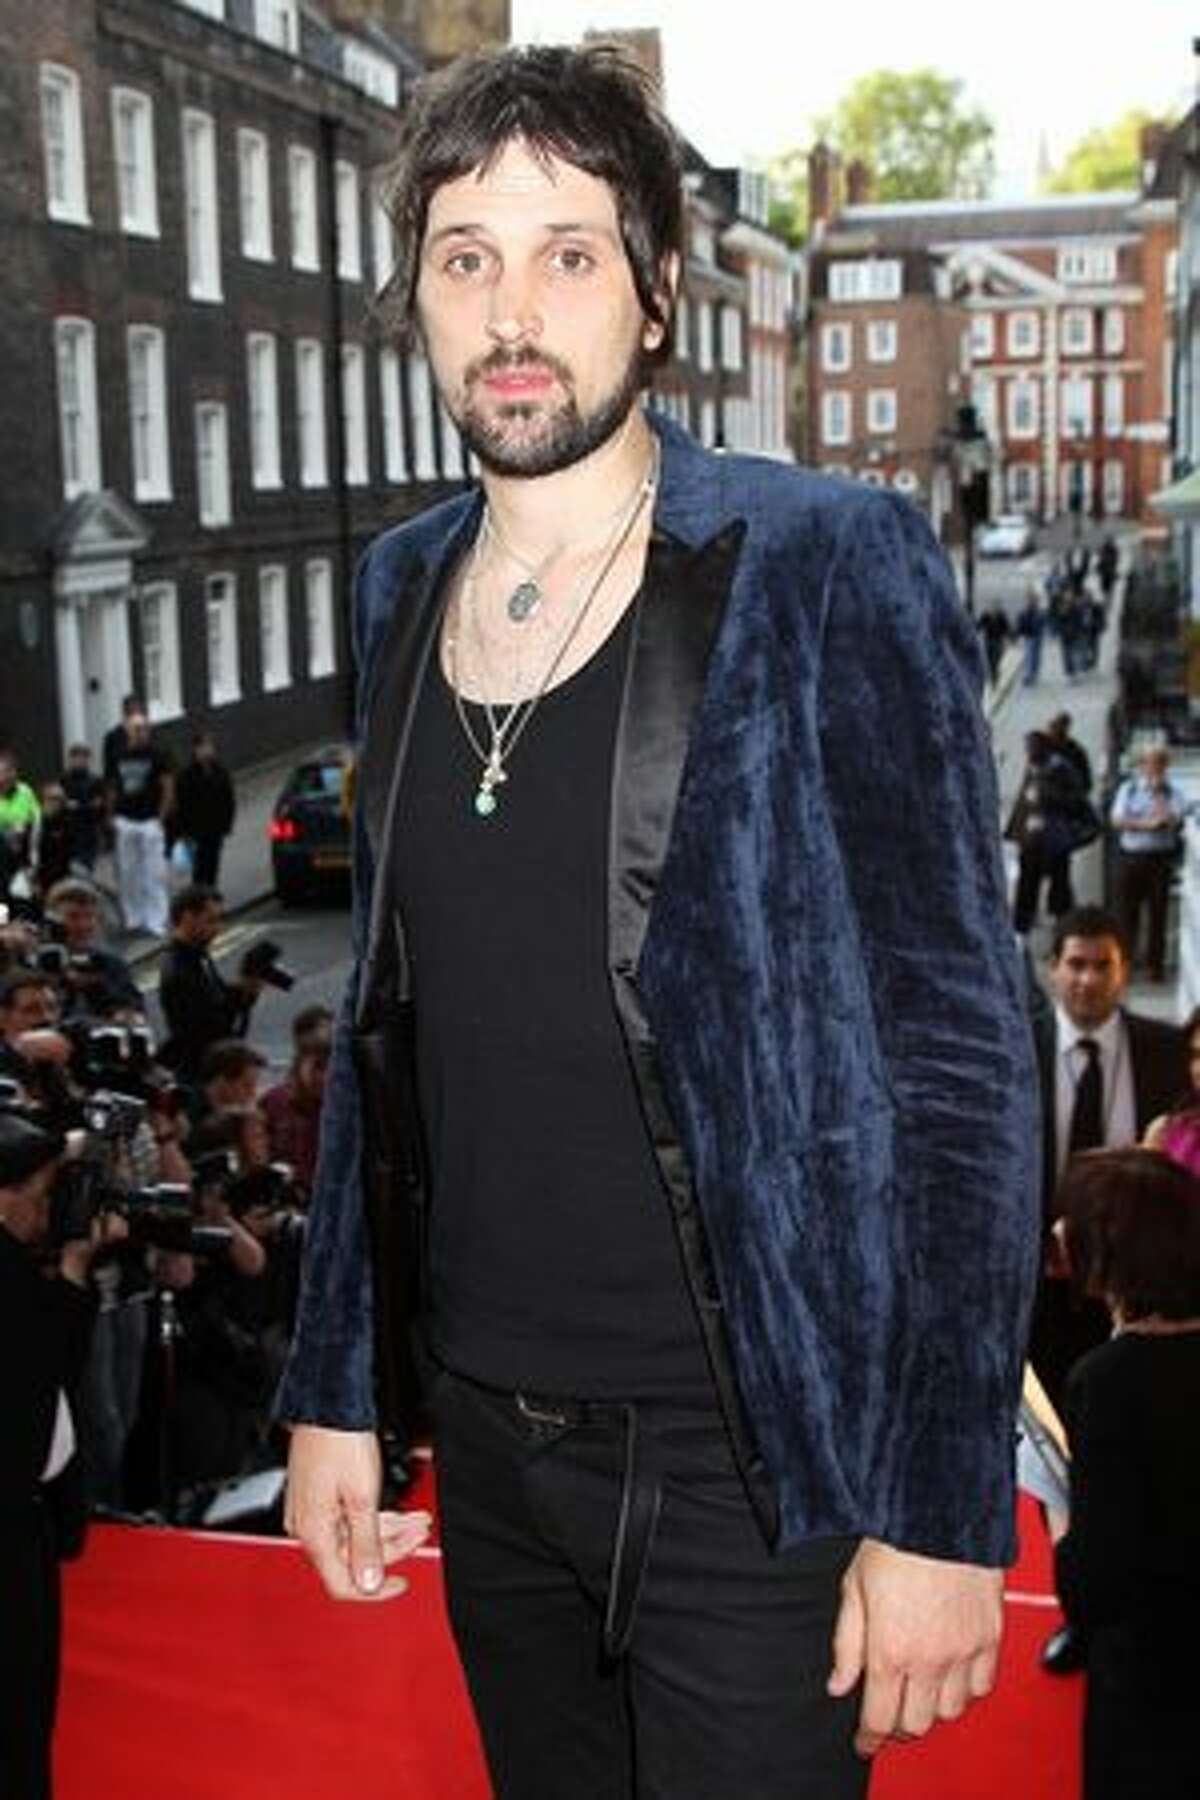 Serge Pizzorno of Kasabian arrives at the Keep A Child Alive Black Ball held at St John's, Smith Square on Thursday, May 27 in London, England.